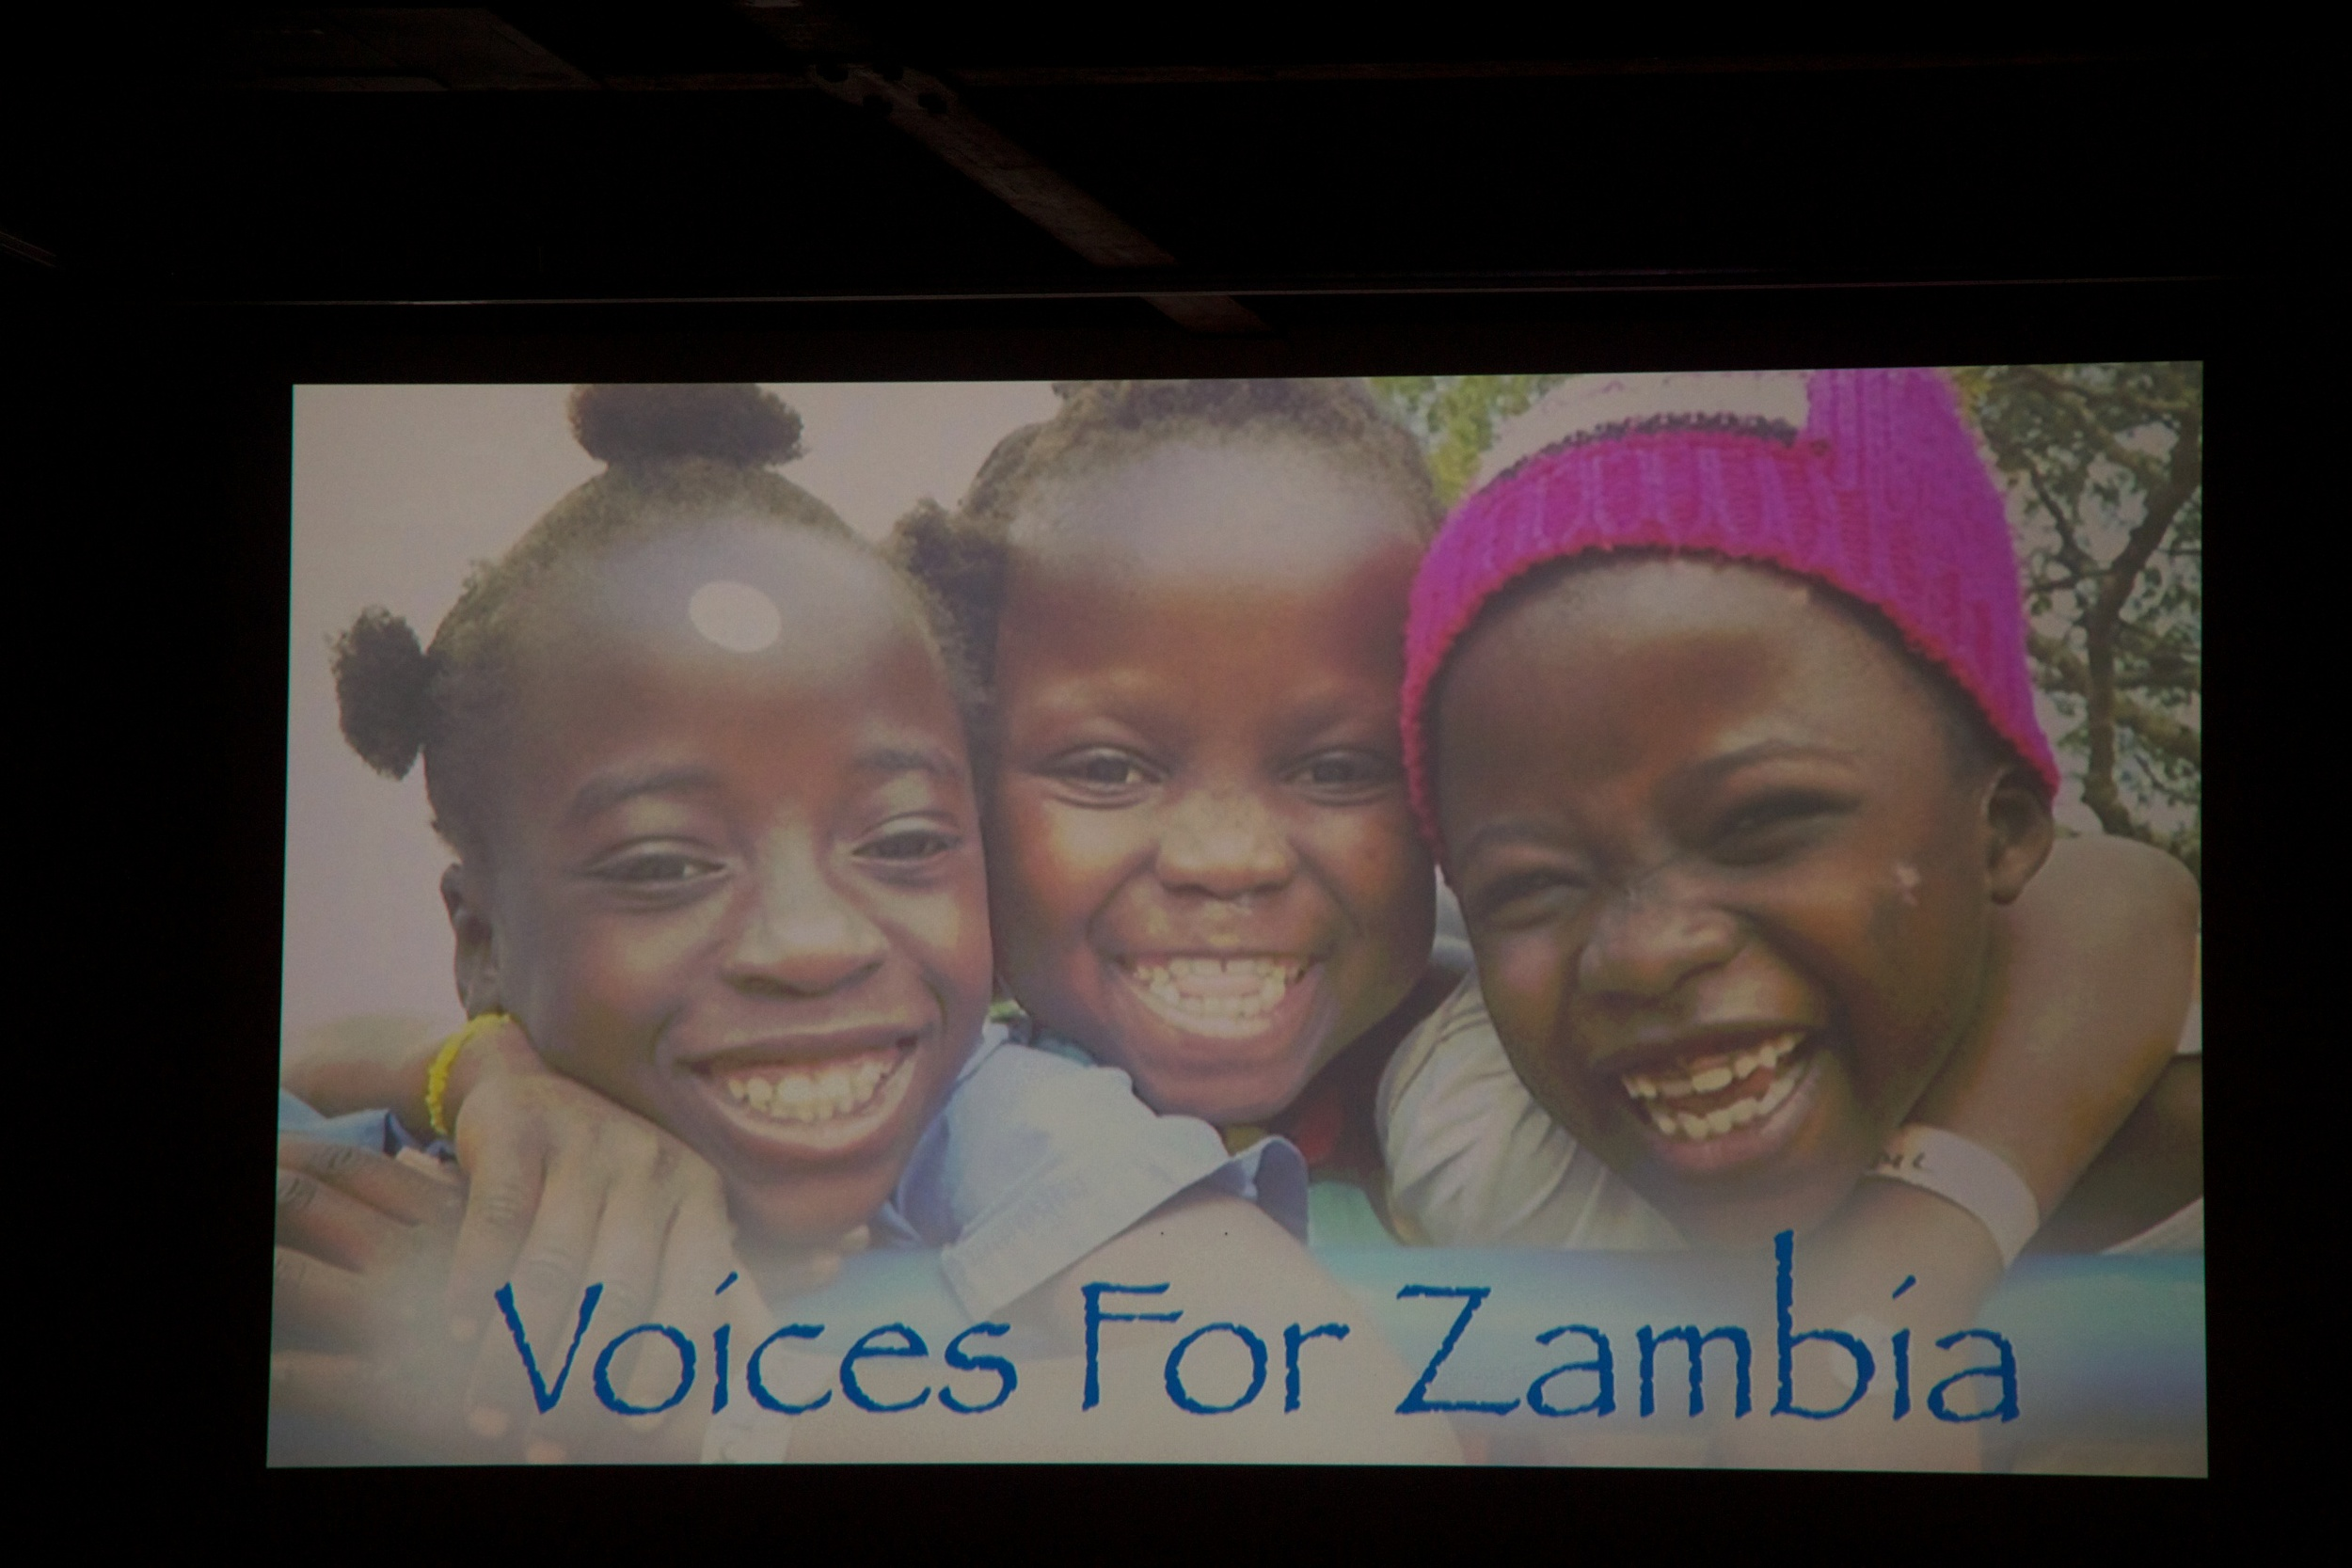 Voices for Zambia 2014